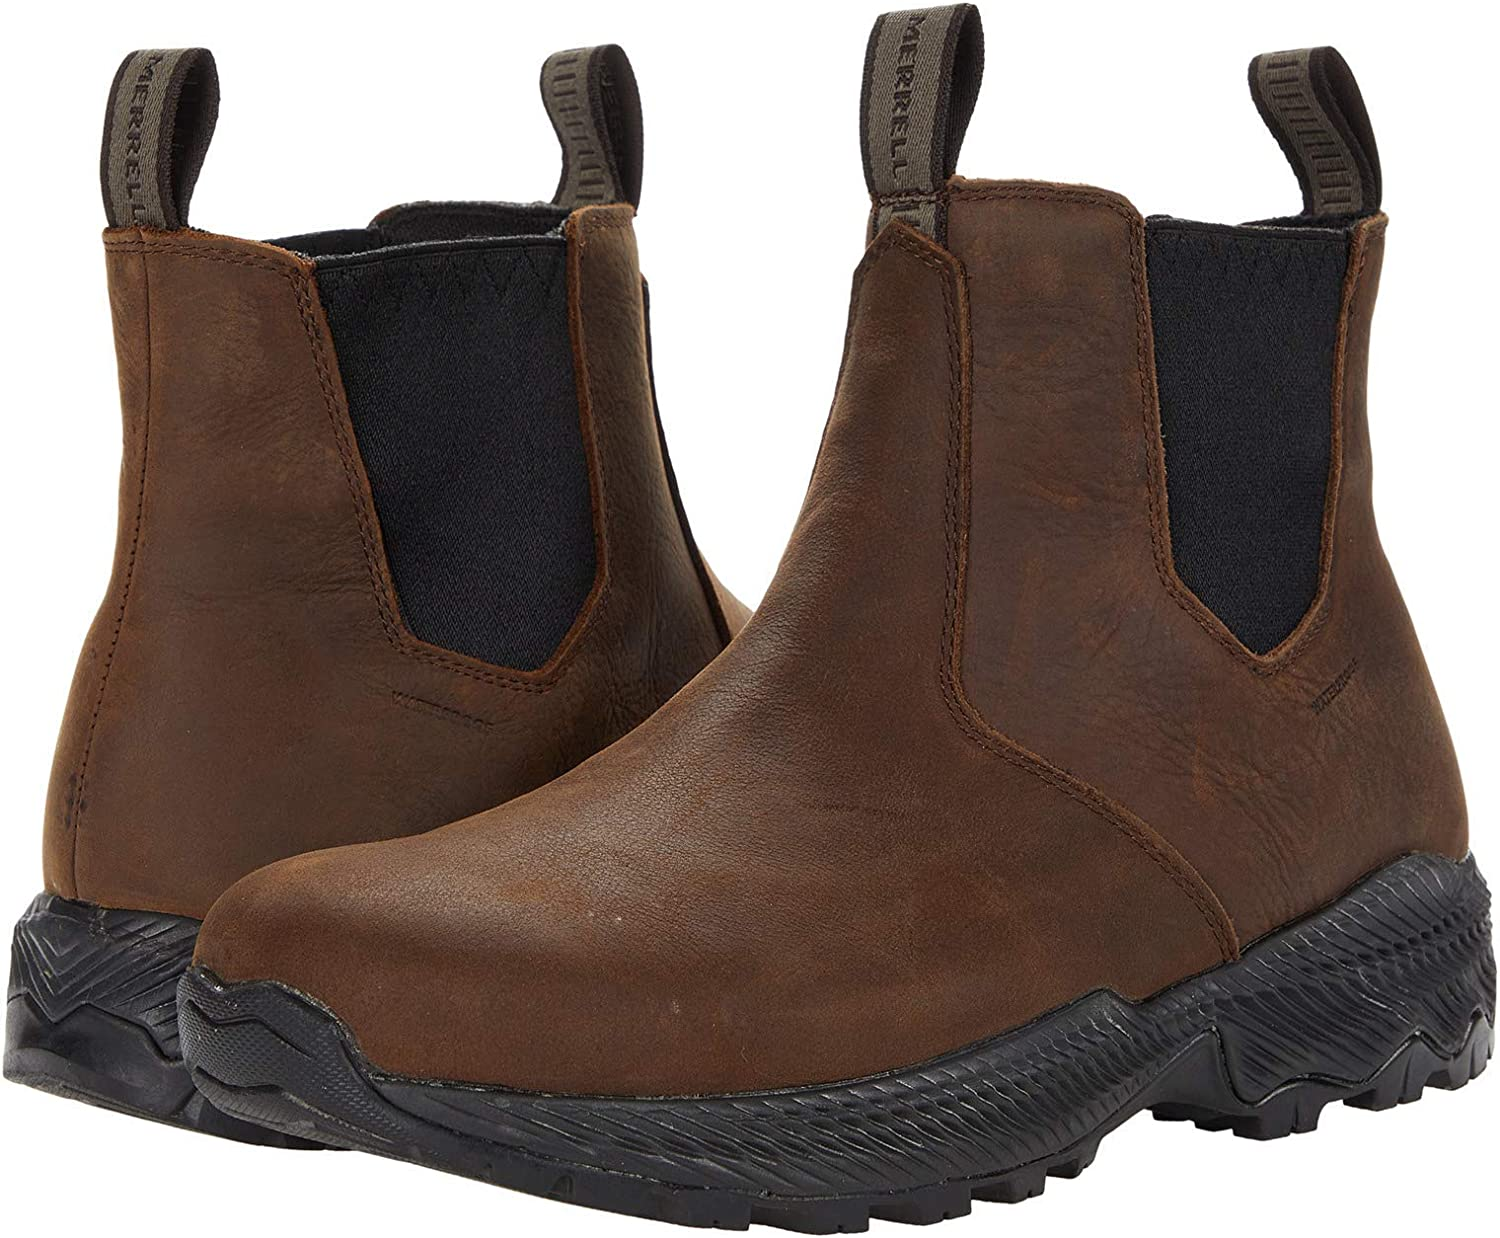 Merrell Men's Forestbound Waterproof Chelsea Boot 40% OFF Cheap Sale Oklahoma City Mall